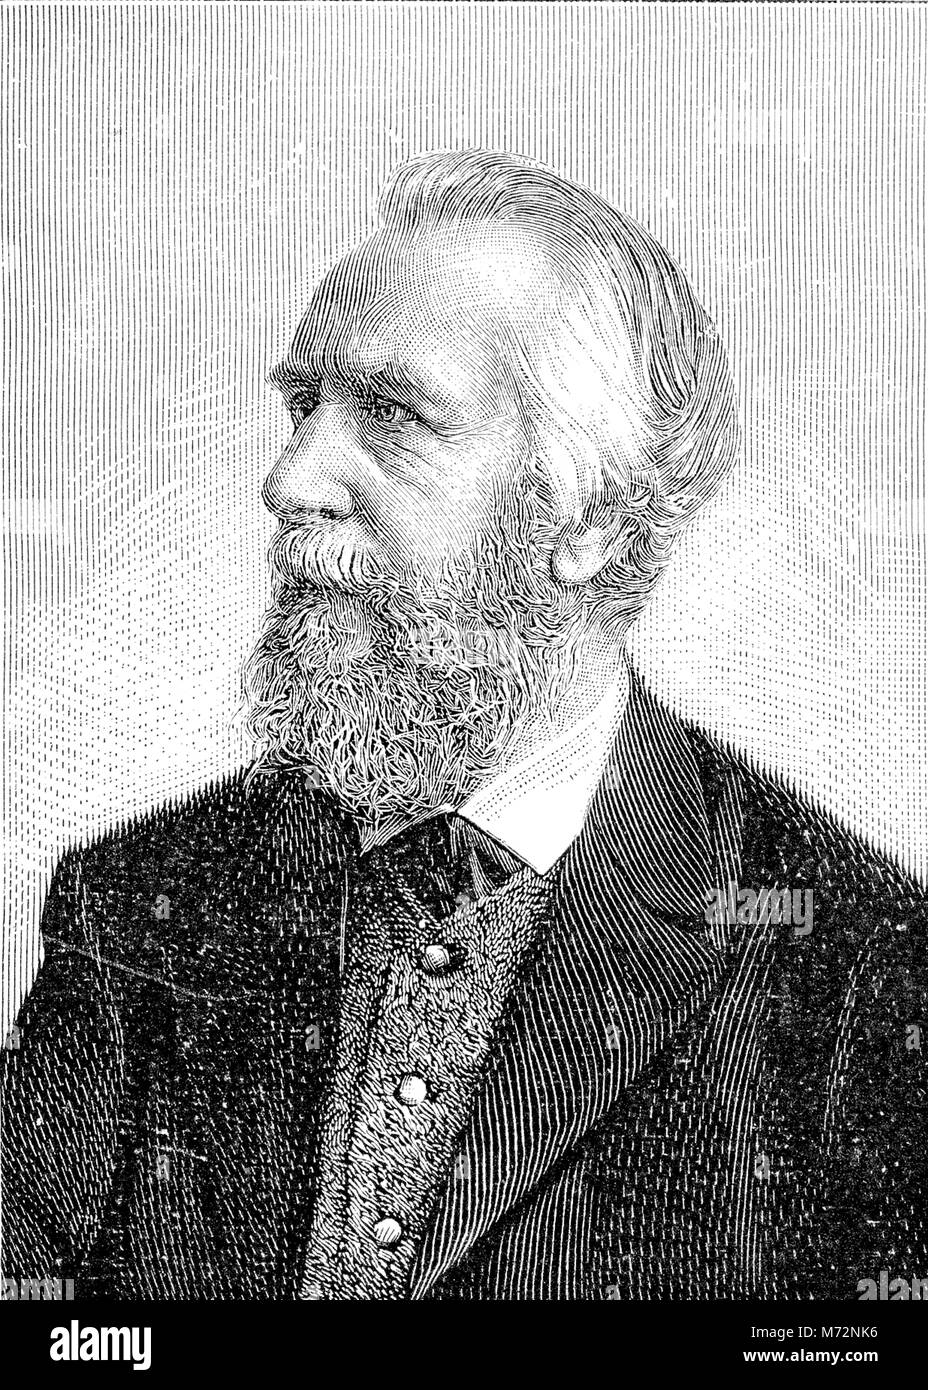 Vintage engraved portrait of Ernst Haeckel, German naturalist and artist, famous for his multicolor illustrations - Stock Image